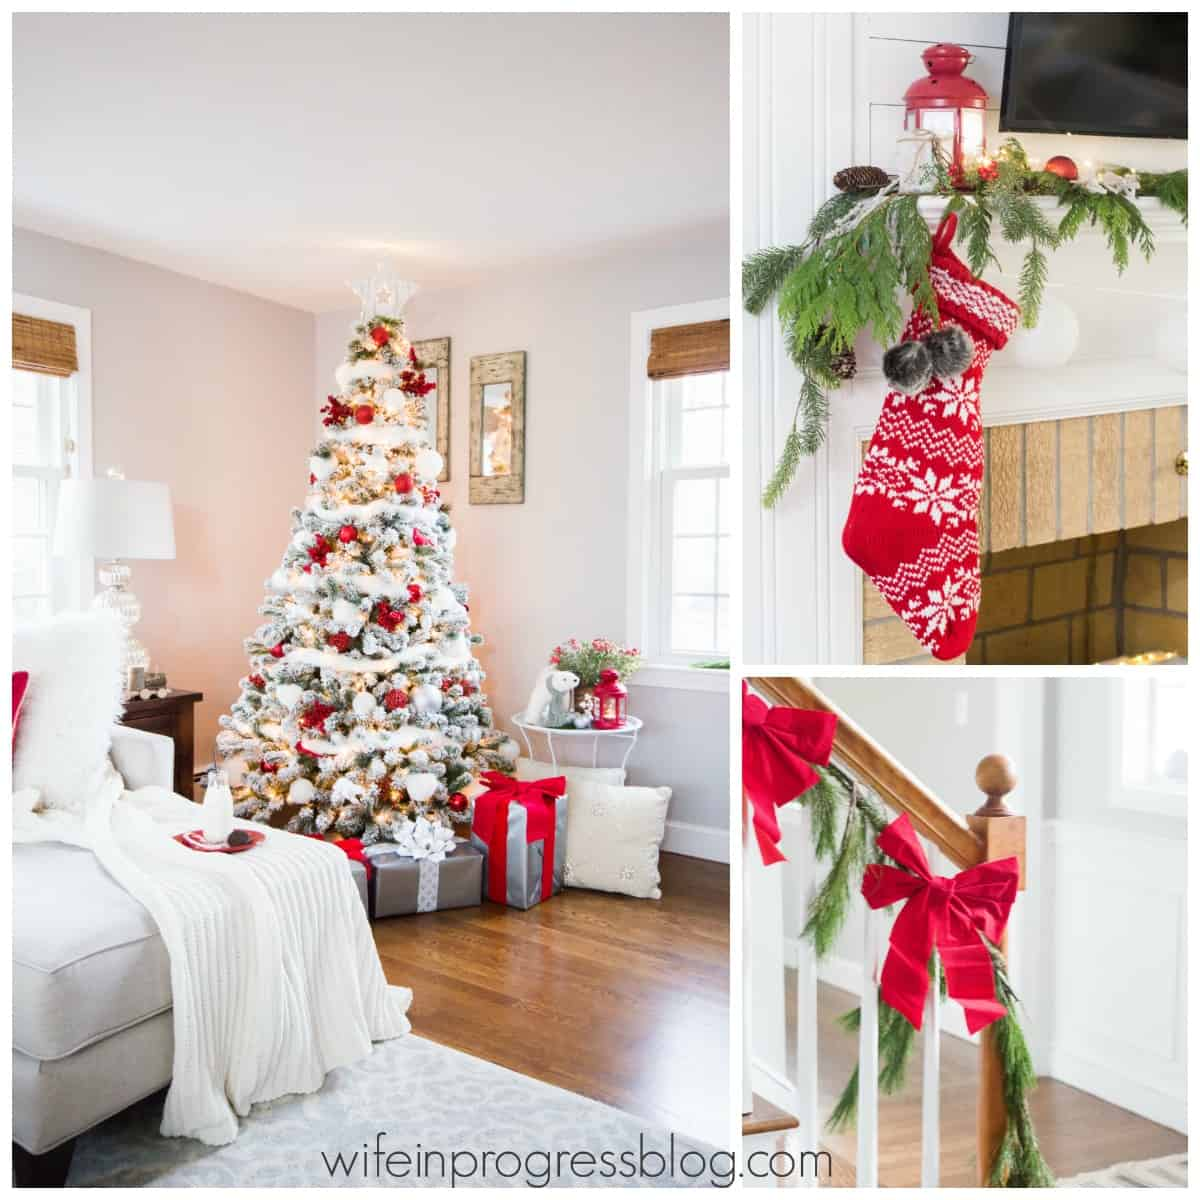 Merry & Bright Holiday Home Tour 2016